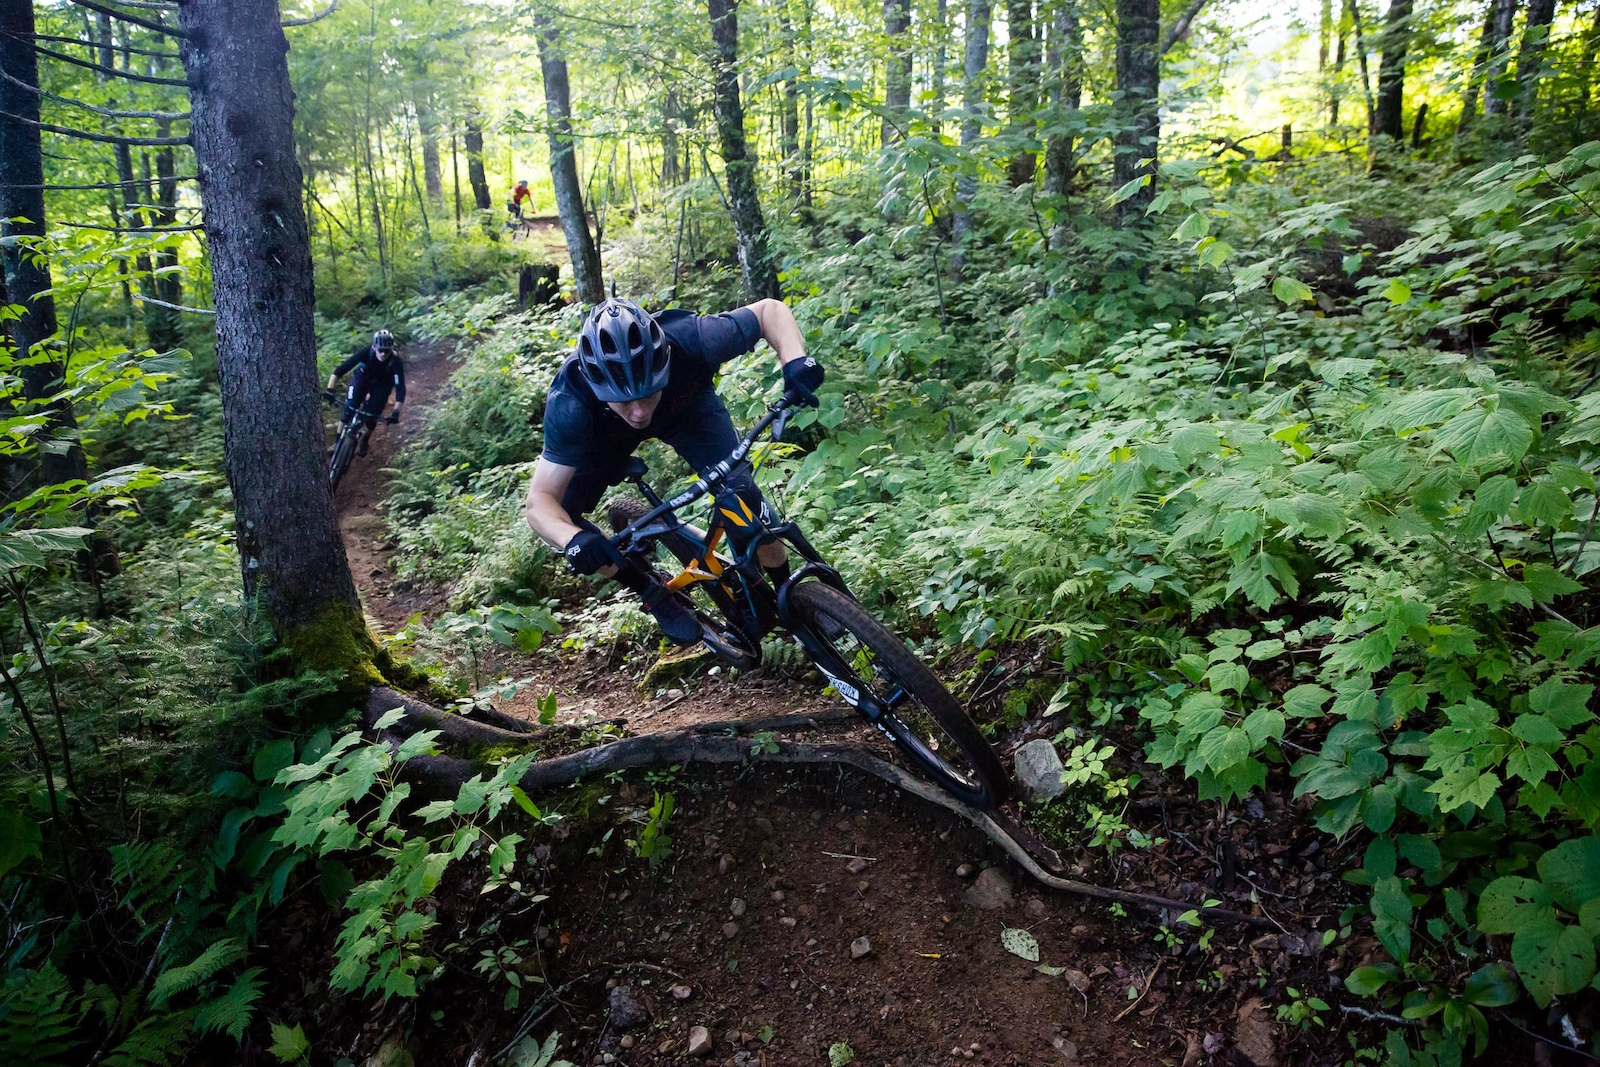 Mark floating over roots on the Boreal trail. PHOTO Ben Gavelda